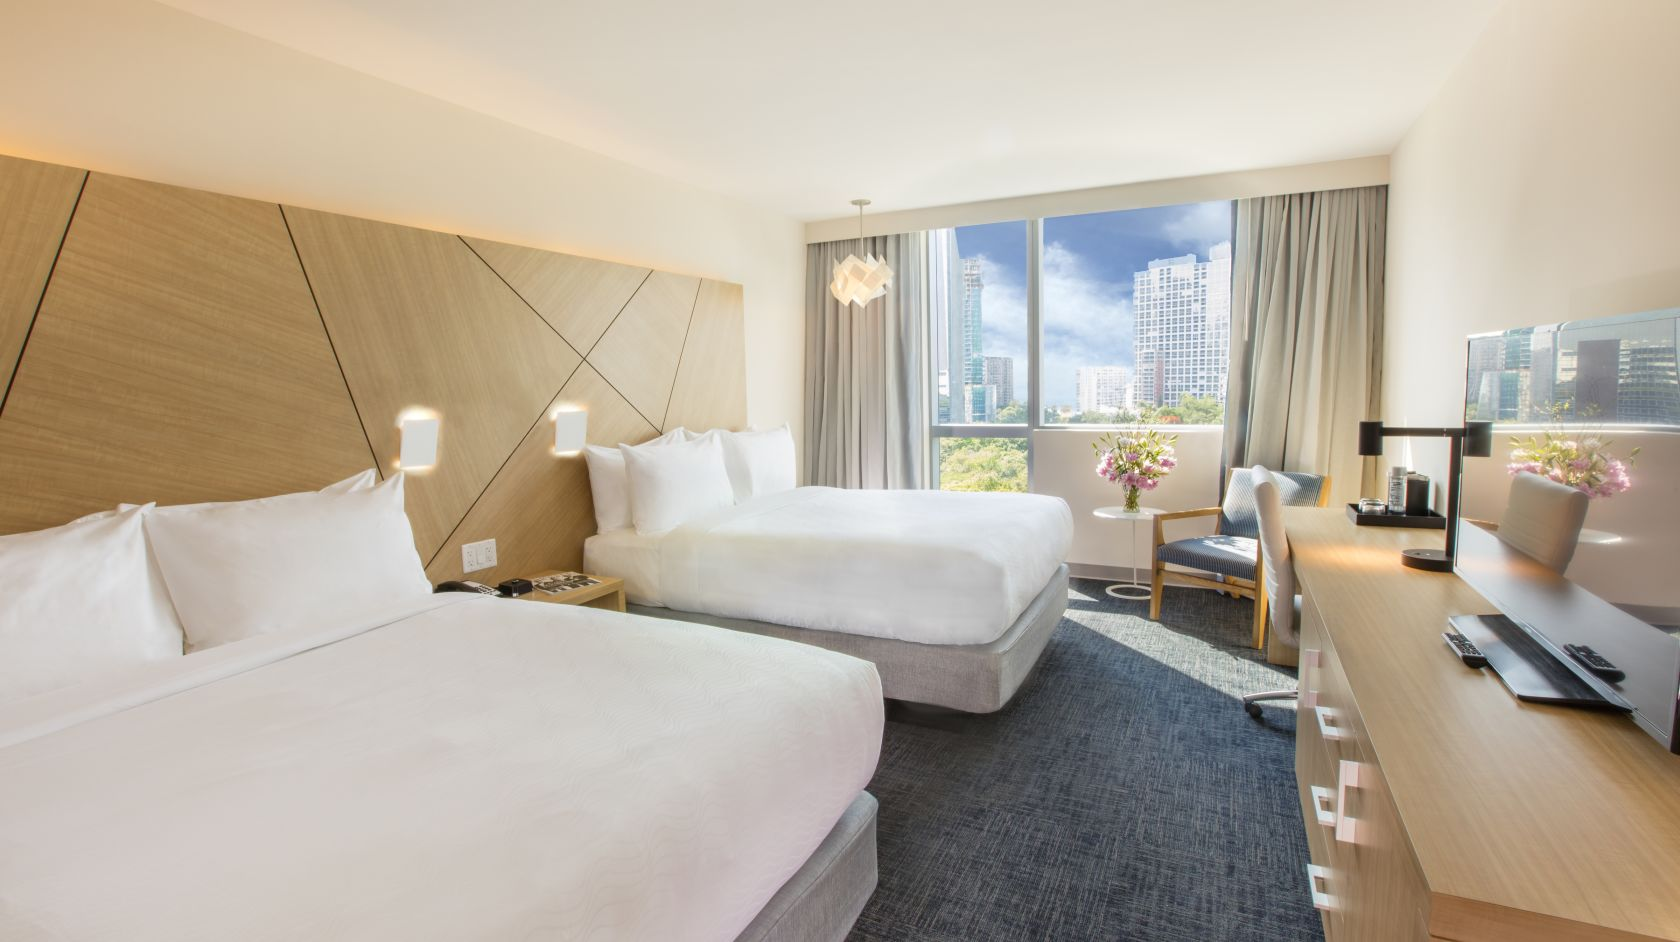 double queen room at Novotel Miami Brickell Hotel